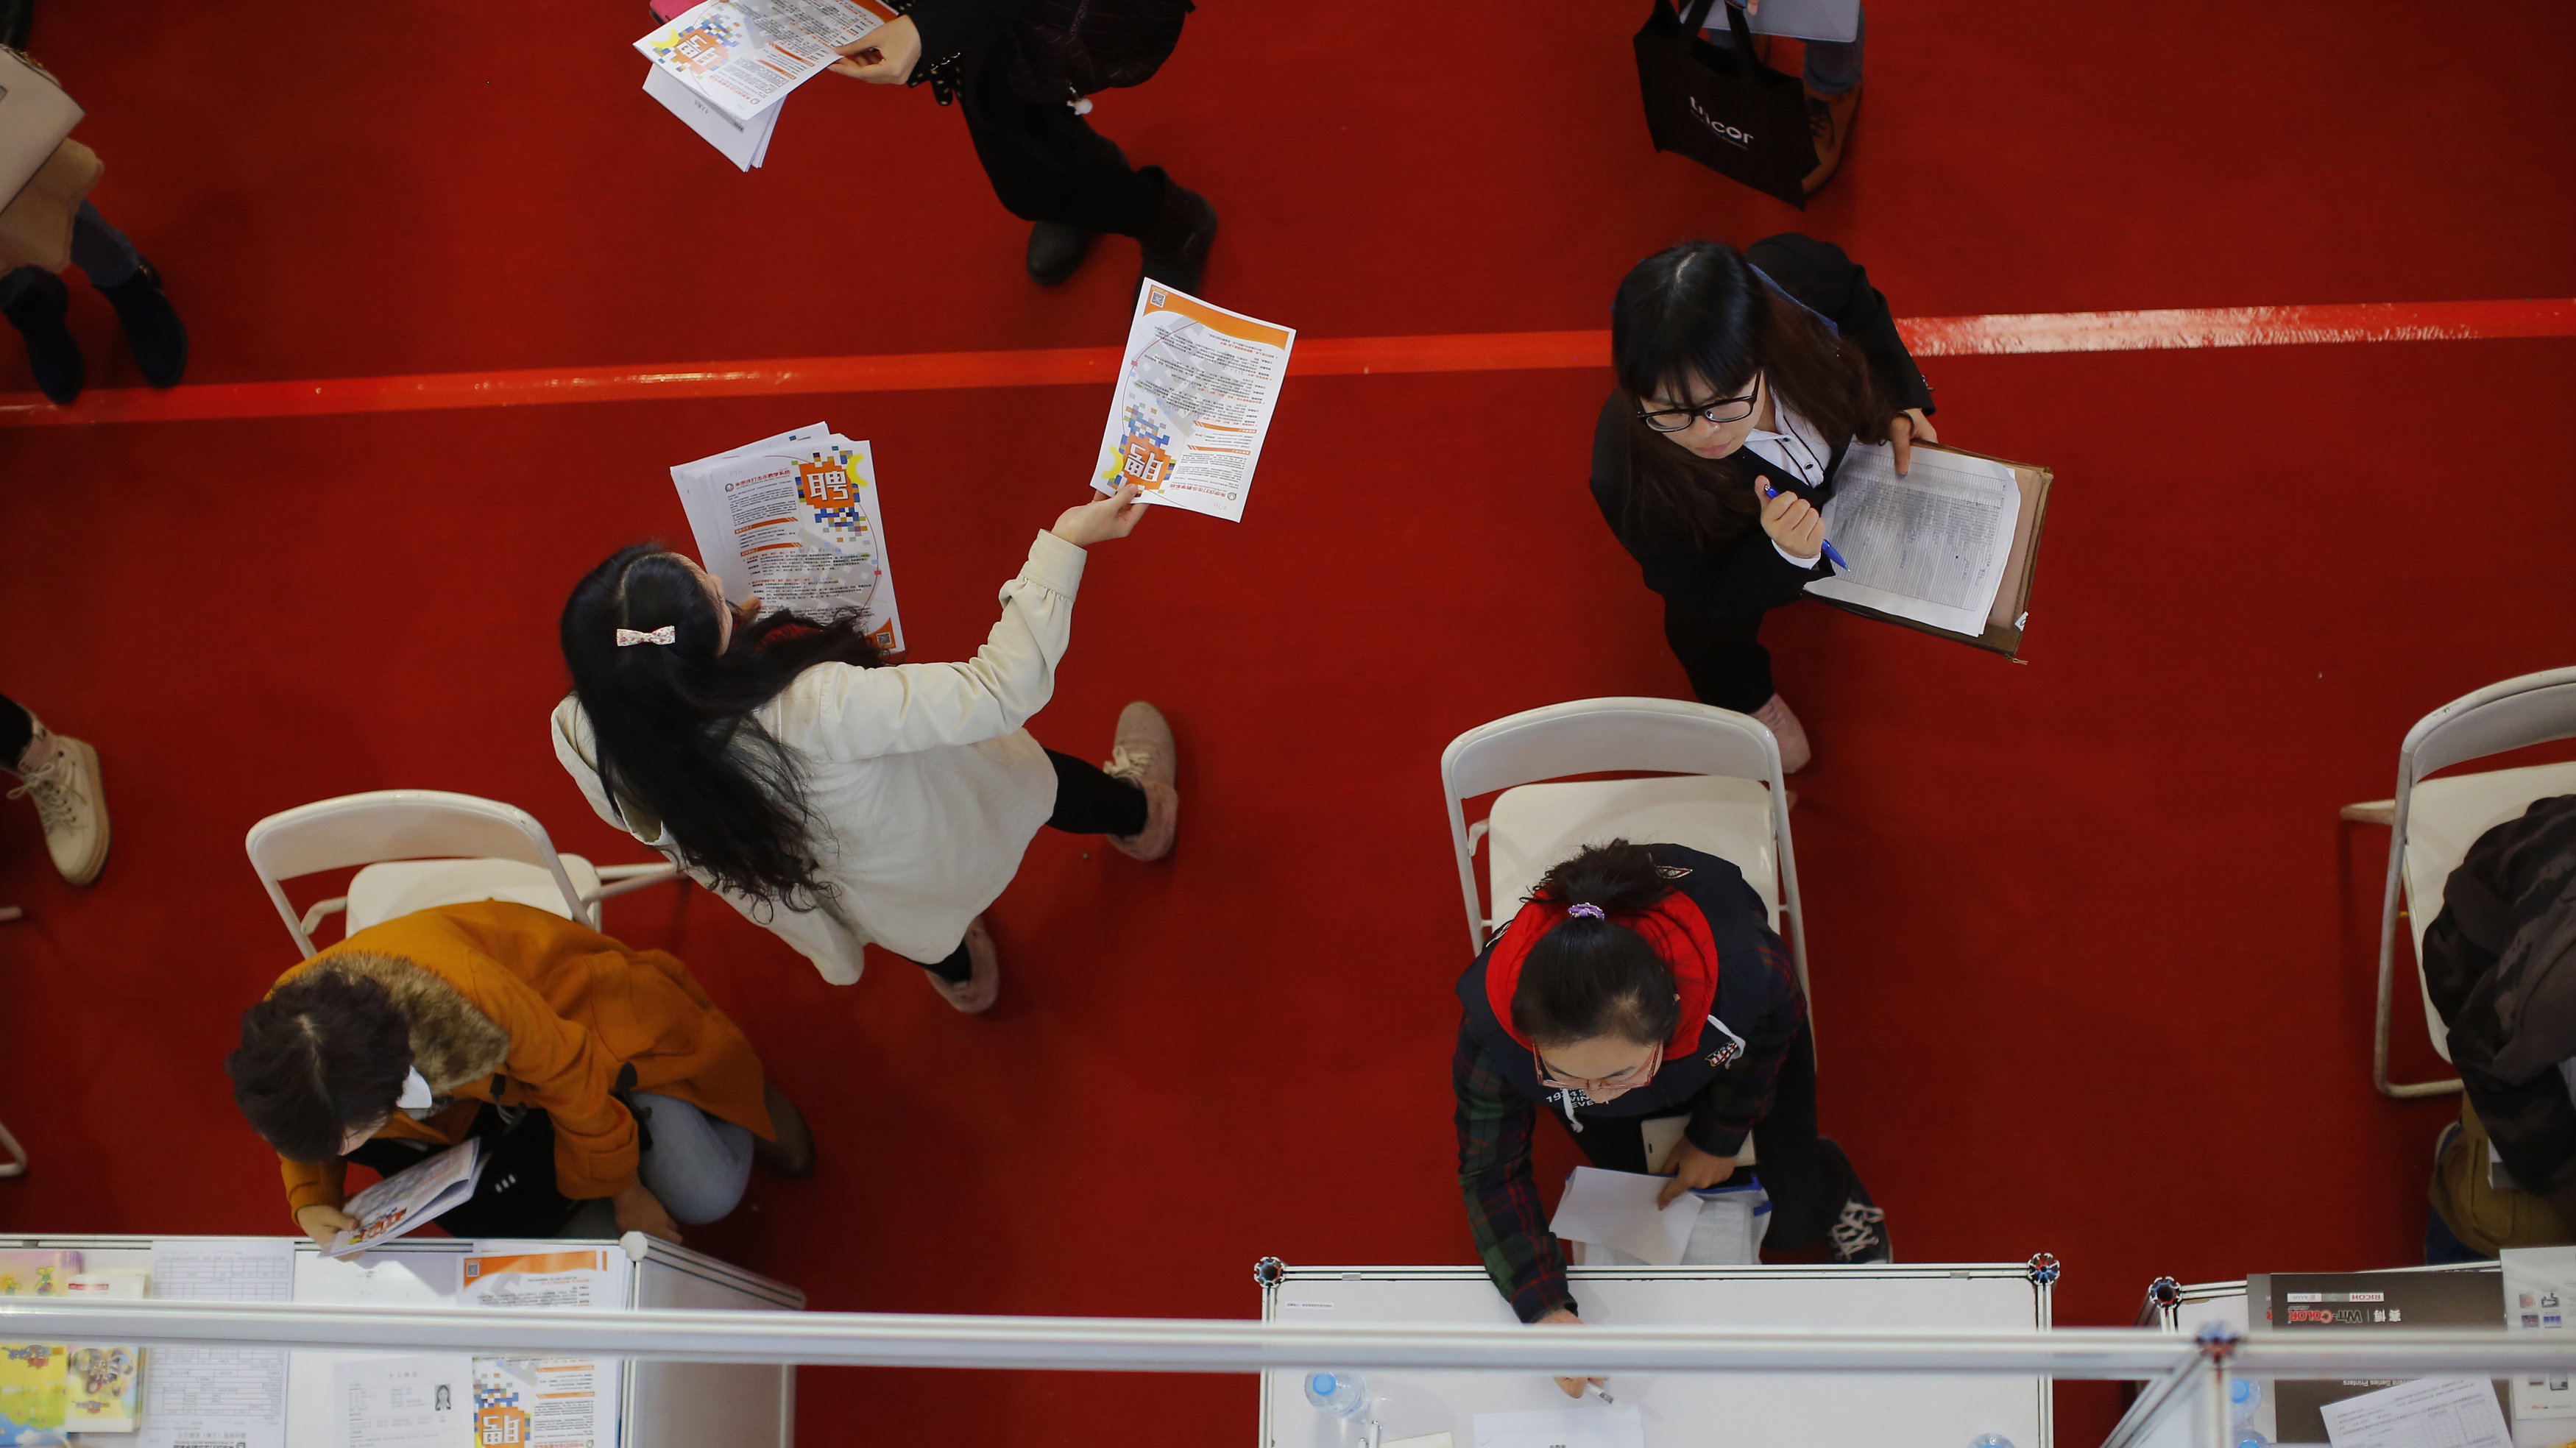 Students visit booths during a job fair at Donghua University in Shanghai November 20, 2014. China's economy faces increasing downward pressure in 2015 while the country pushes forward reforms to keep economic growth stable, the top economic planning body said on Wednesday.